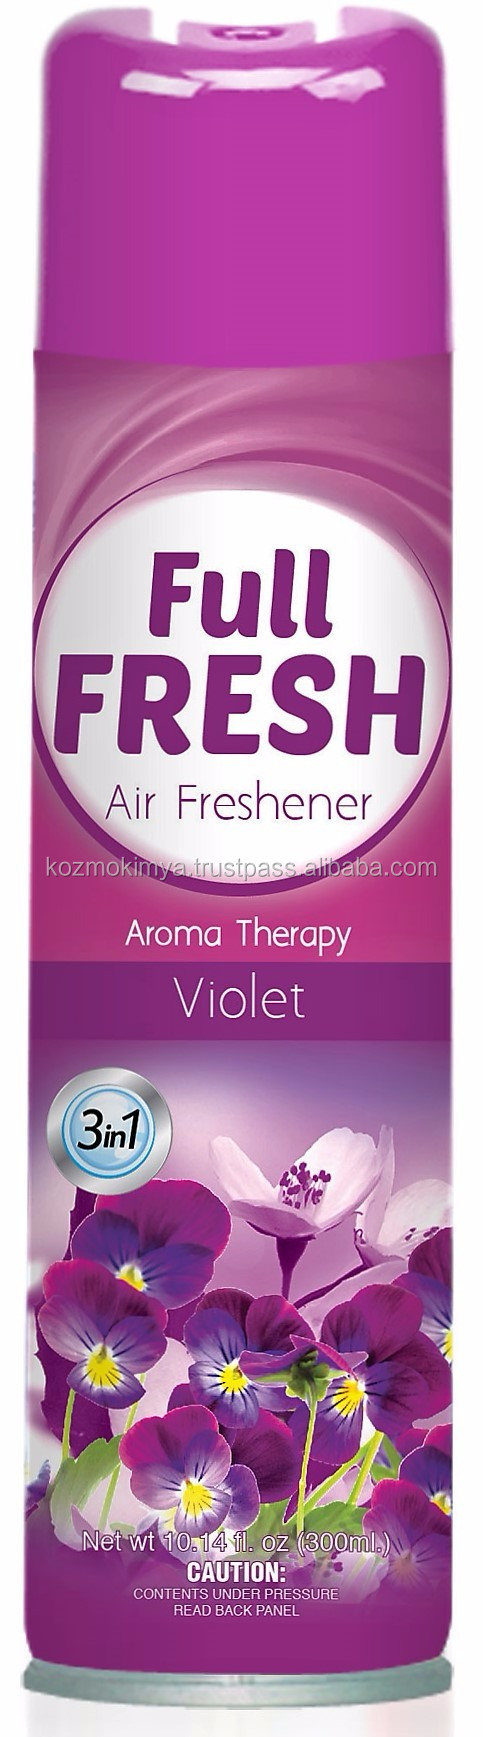 300ml Aroma Therapy Violet Air Freshener